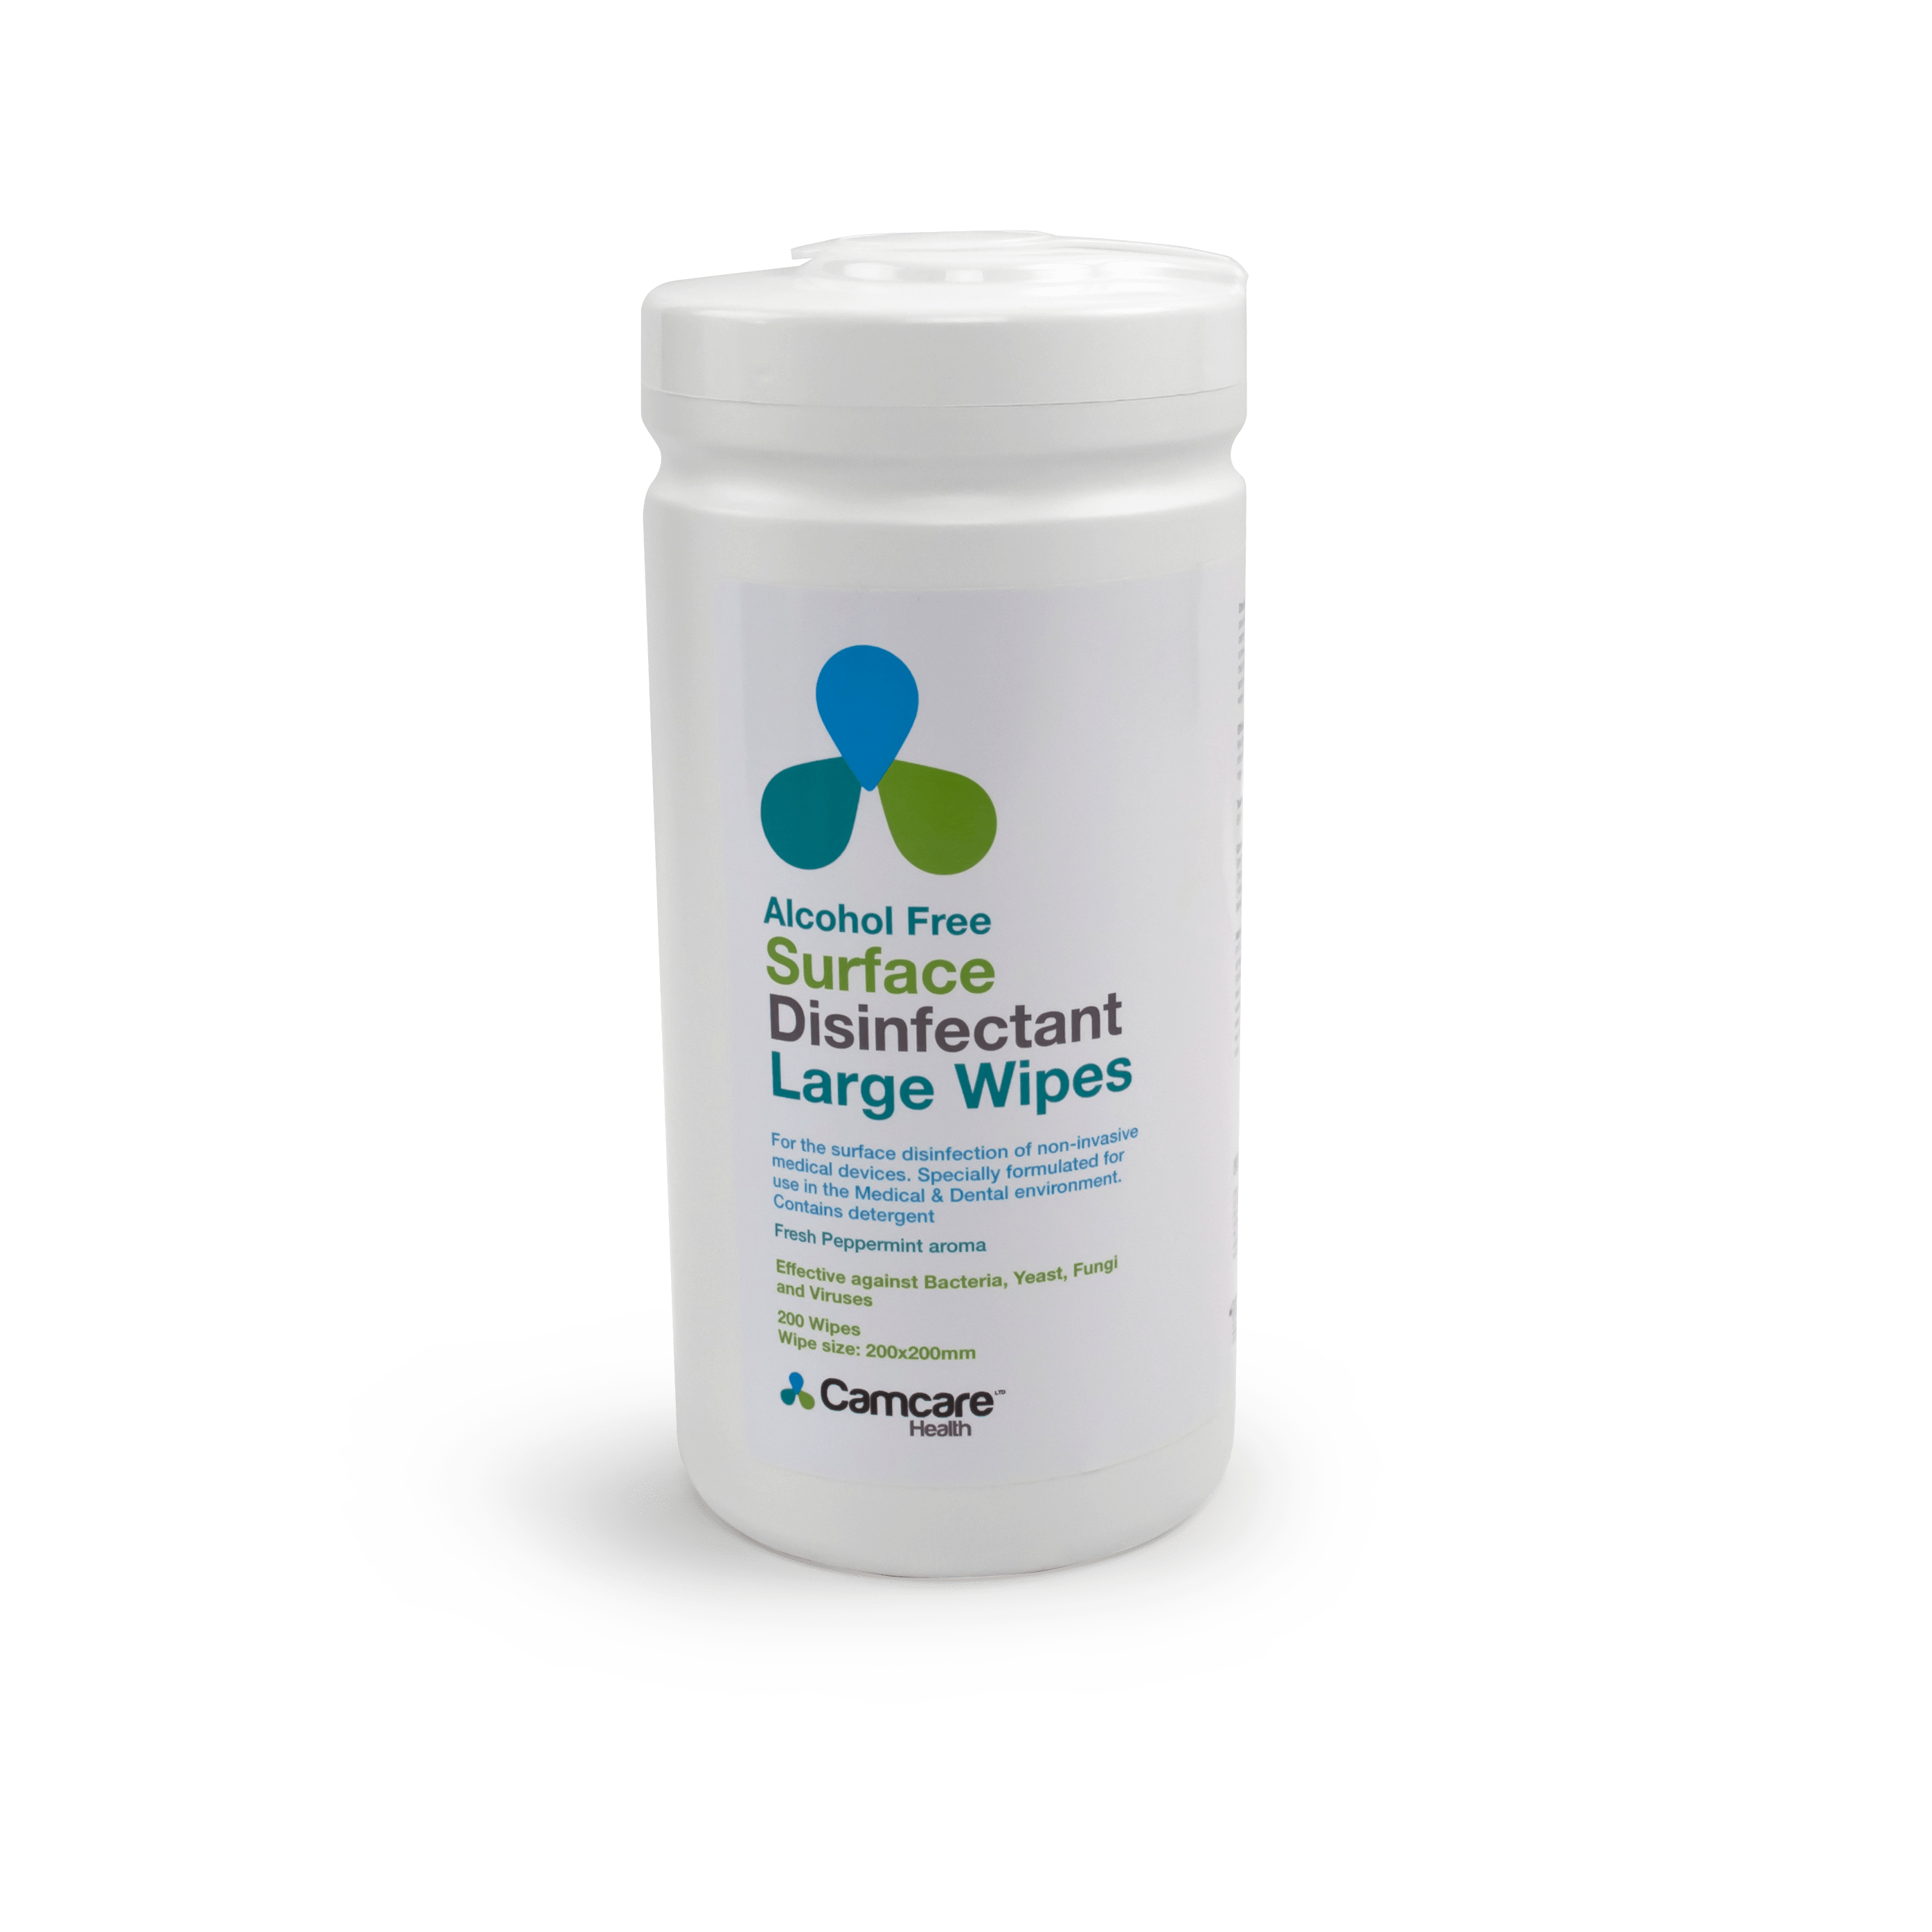 Alcohol Free Surface Disinfectant Wipes Tub of 200 Wipes